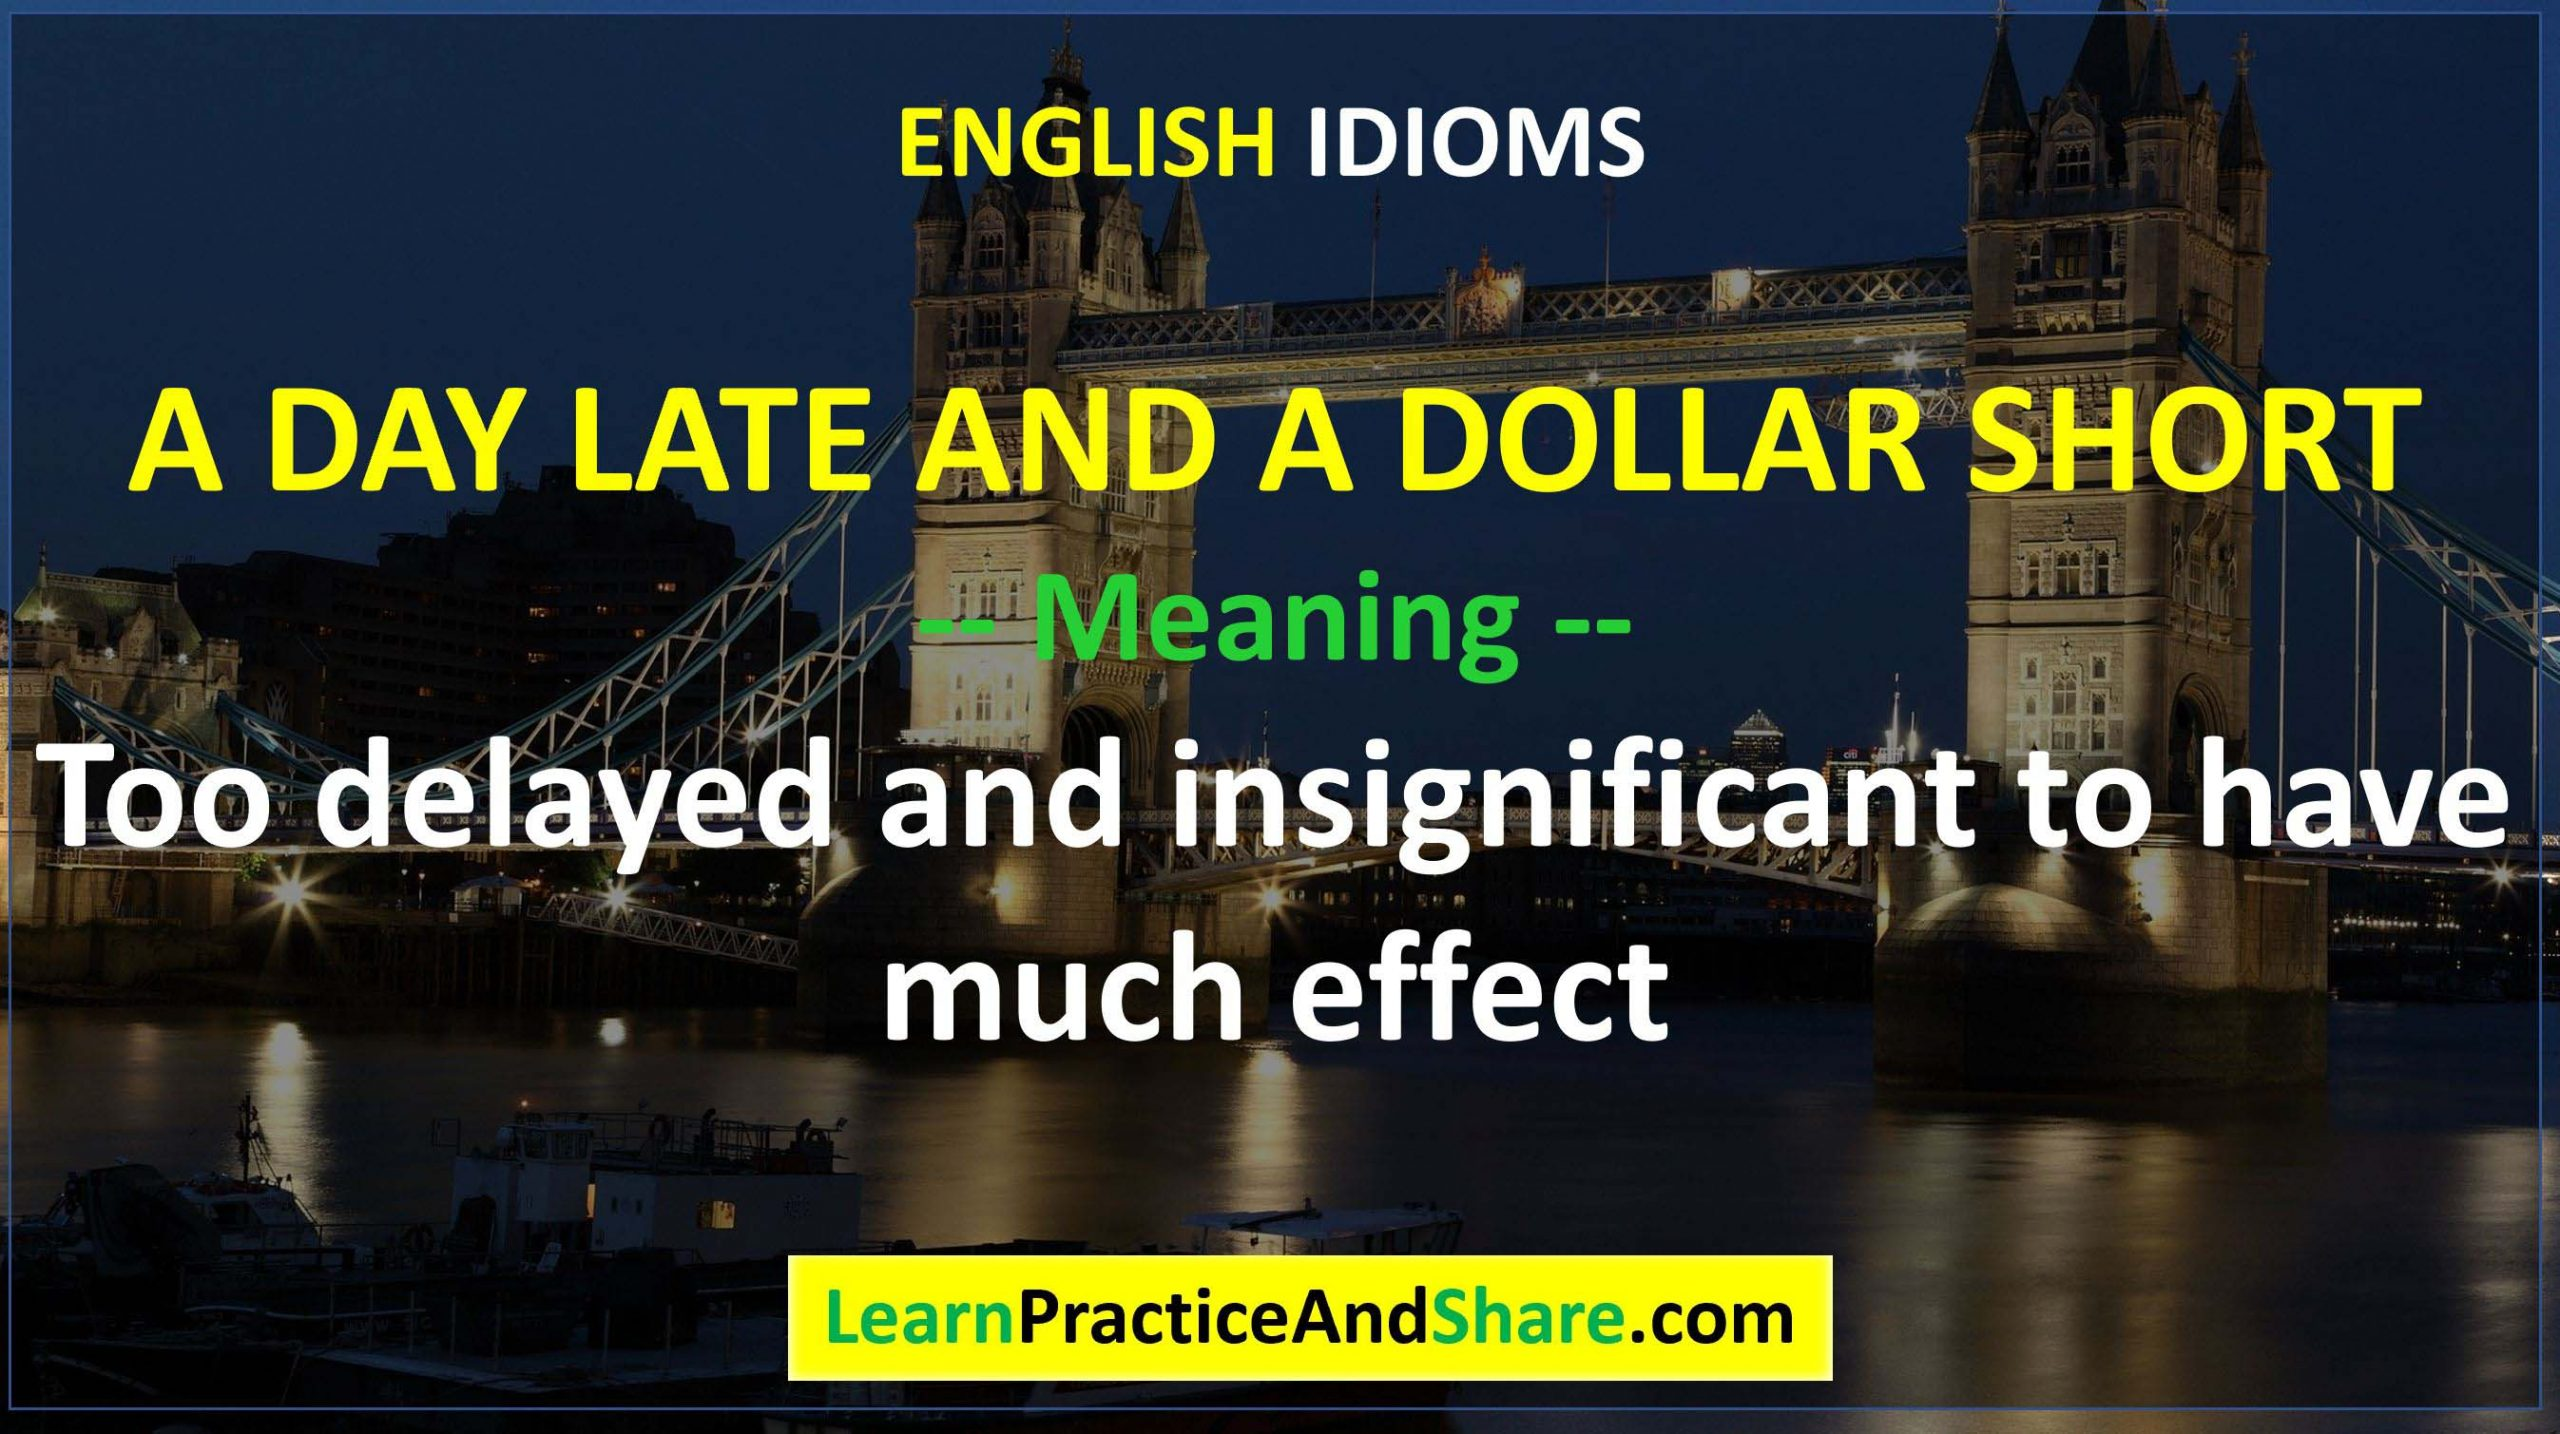 English Idiom - A Day Late And A Dollar Short